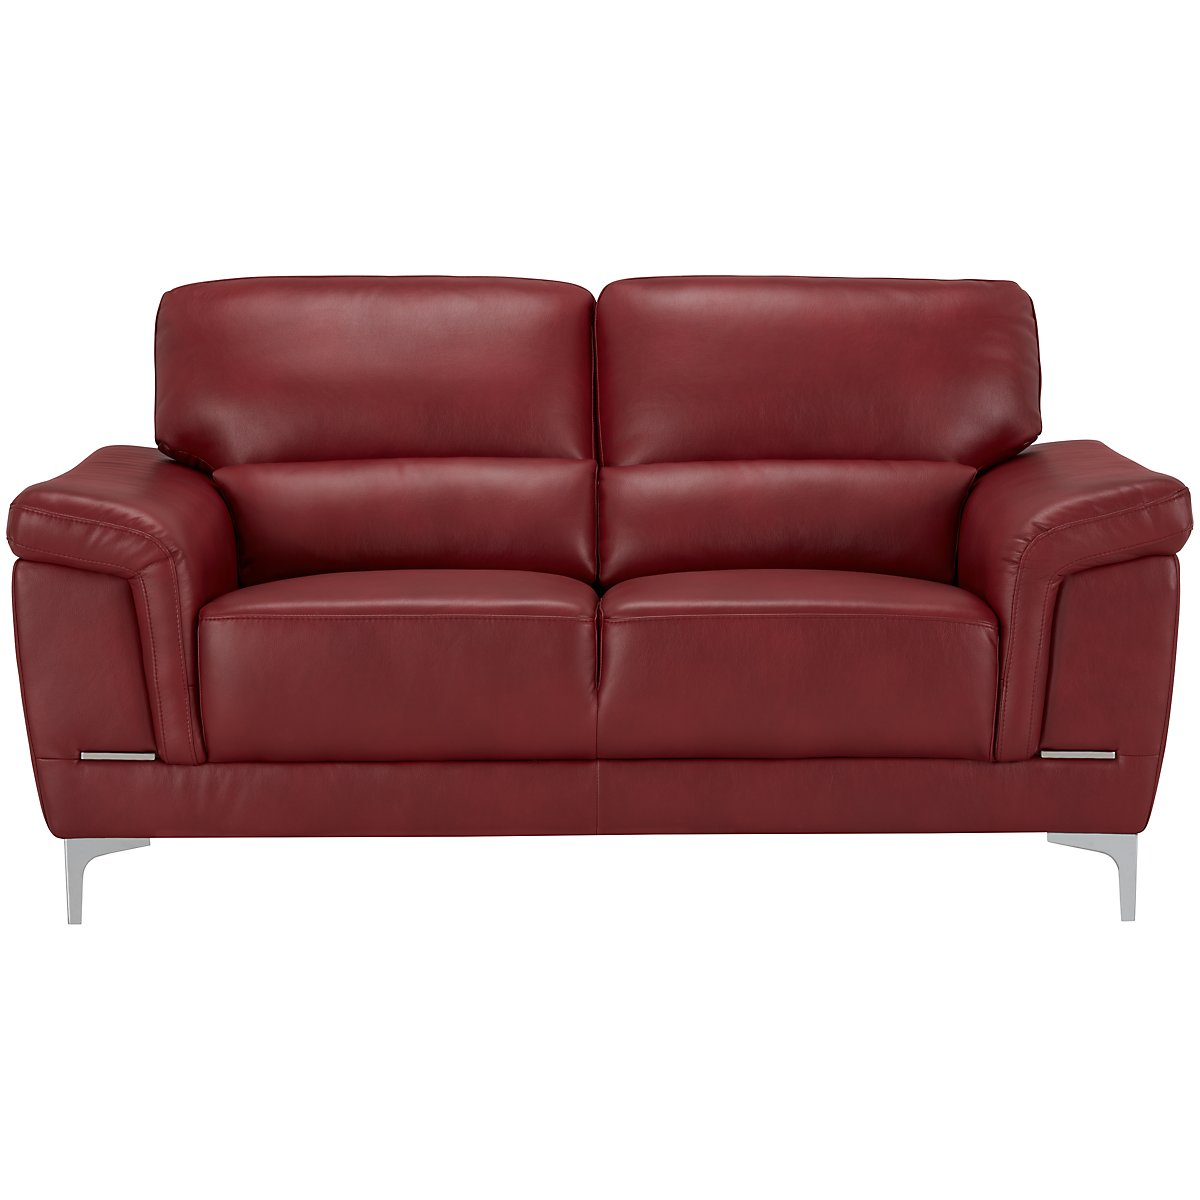 City Furniture Enzo Red Microfiber Loveseat